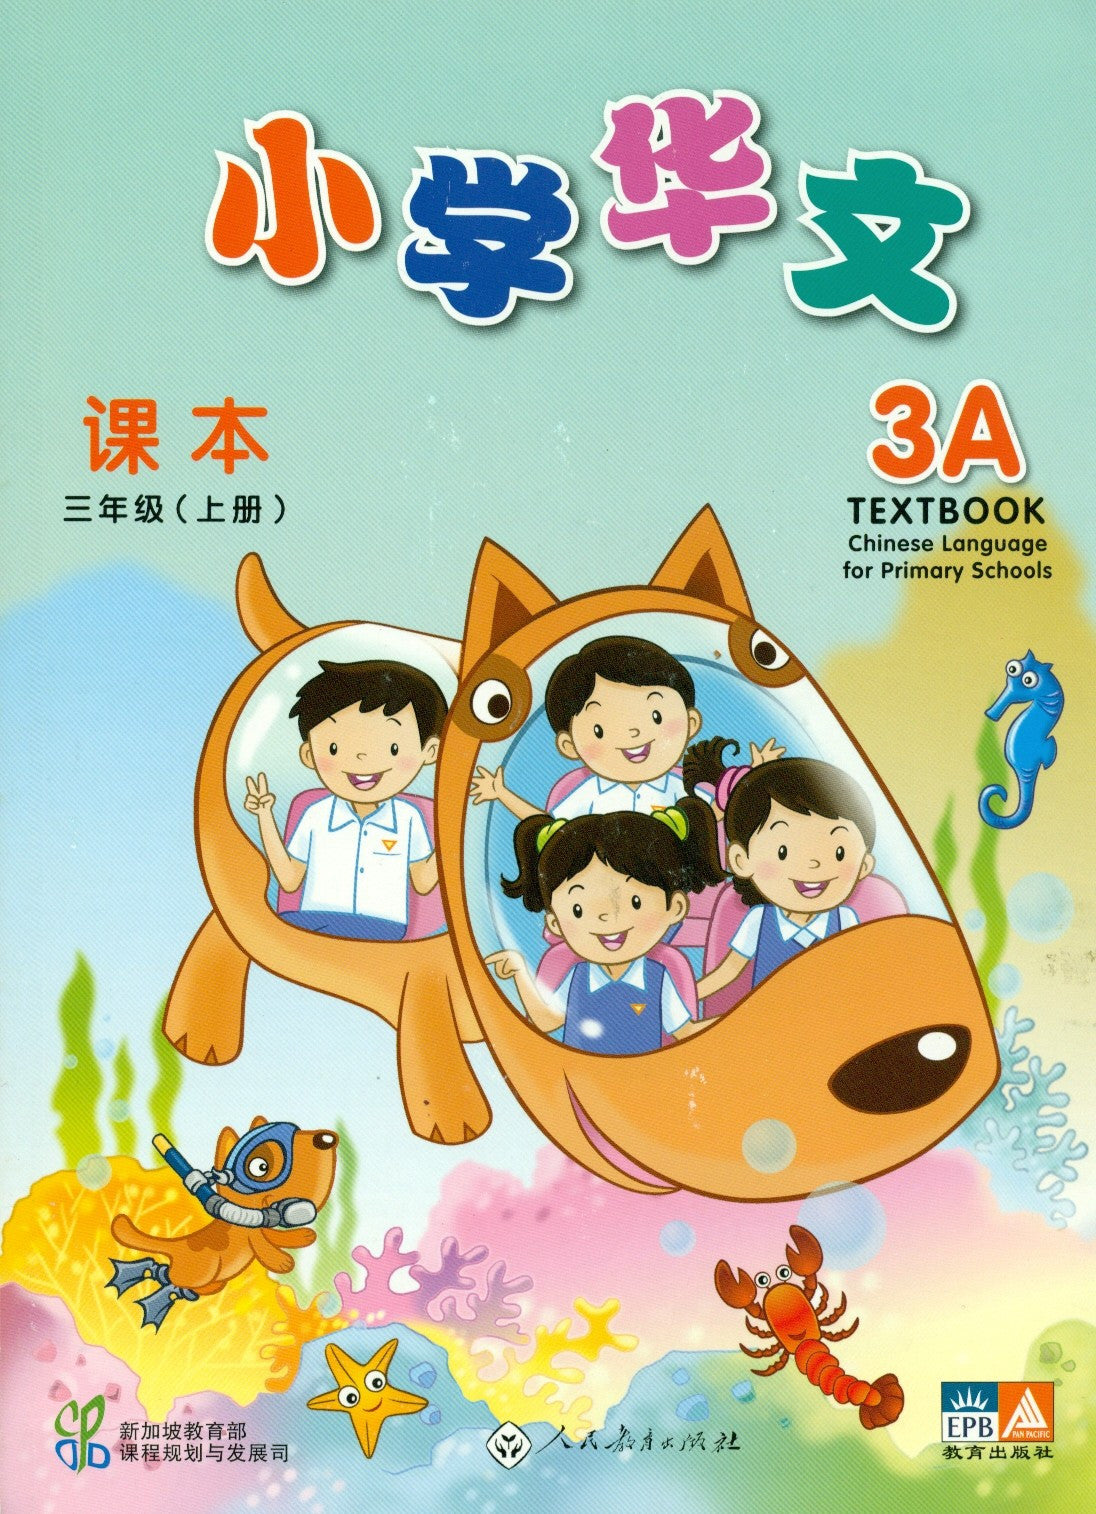 Chinese Language for Primary Schools: Textbook 3A